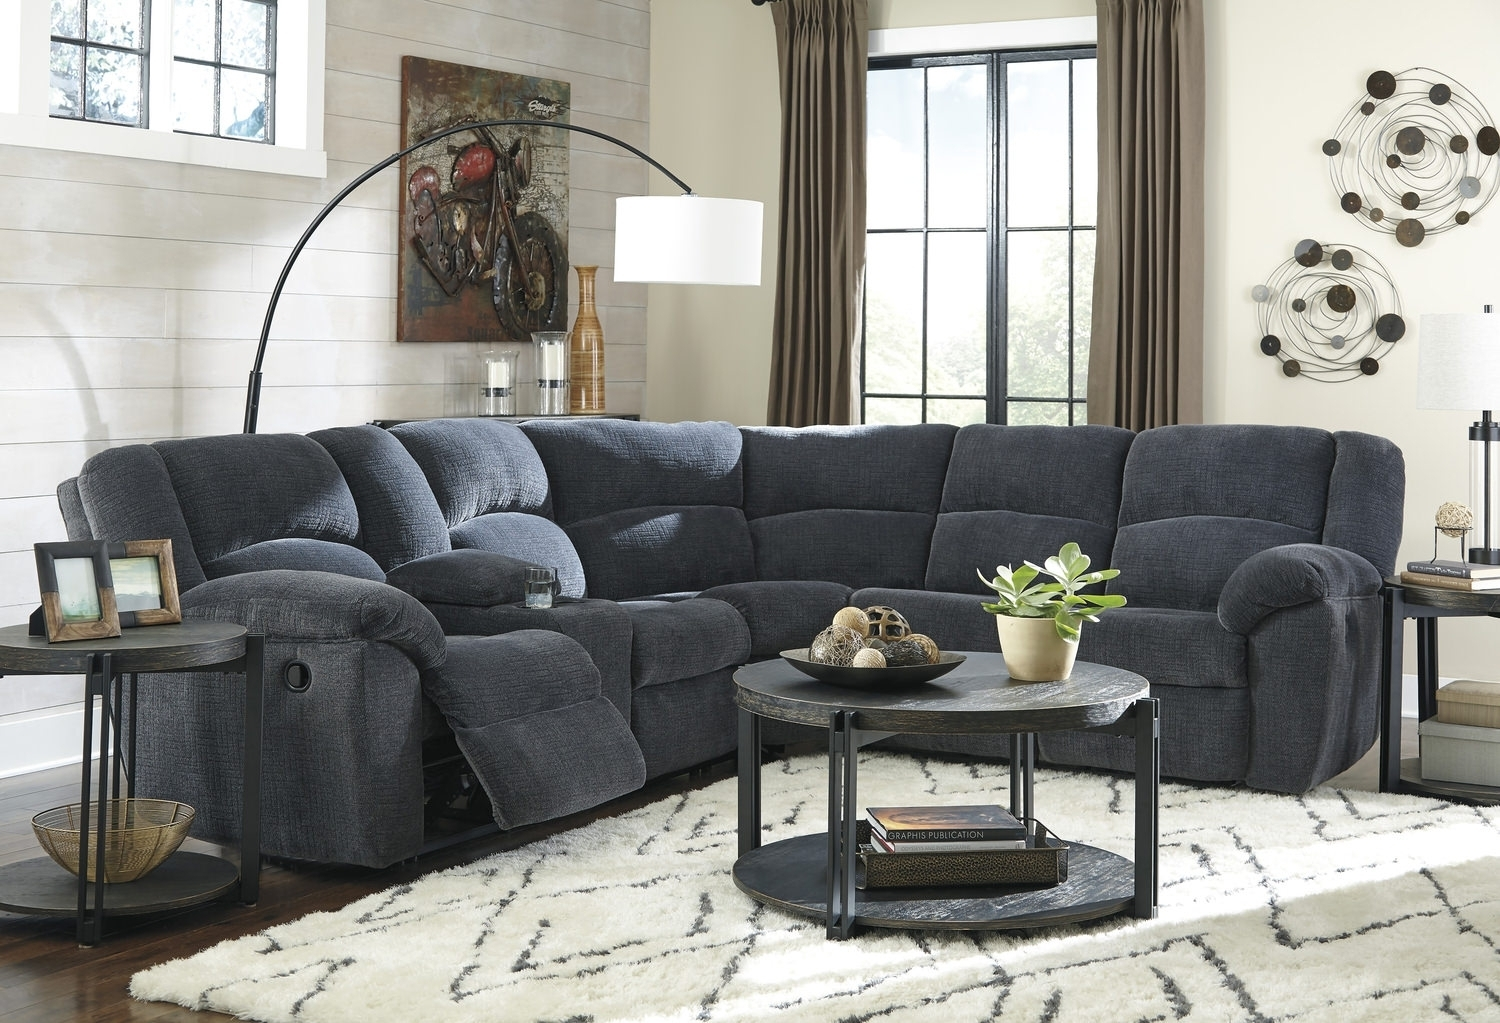 Sectional Sofas Duluth Mn • Sectional Sofa In Duluth Mn Sectional Sofas (Image 7 of 10)